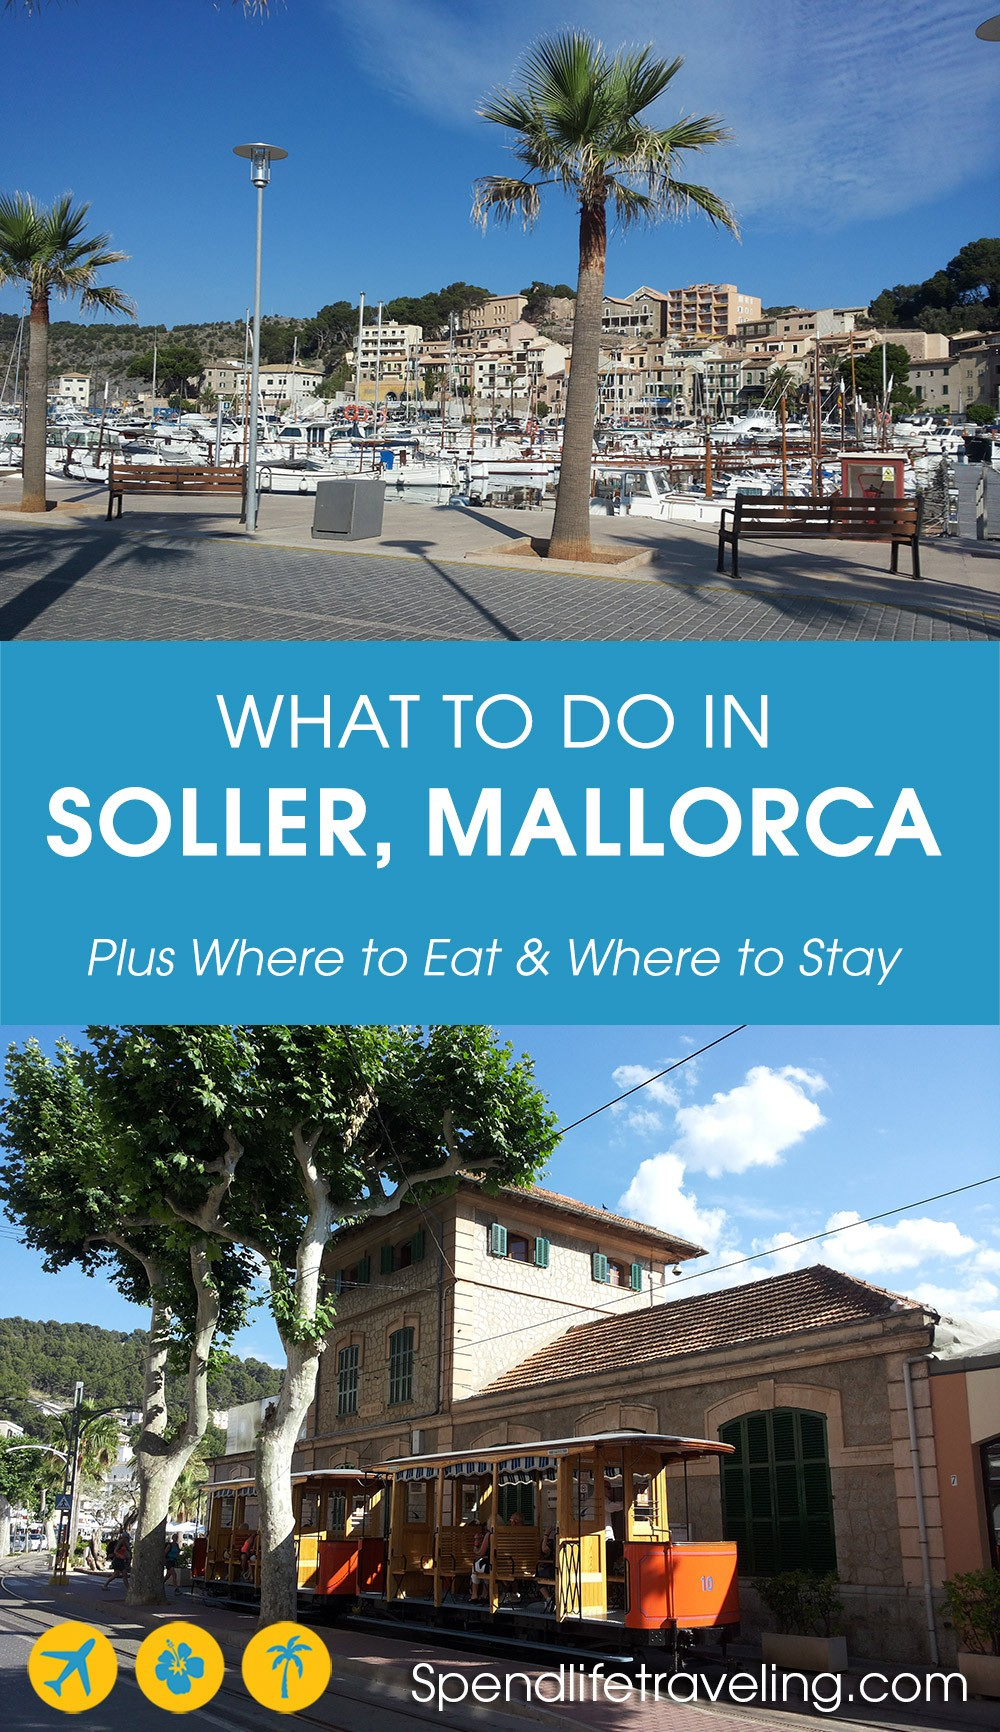 A guide for what to do in Soller